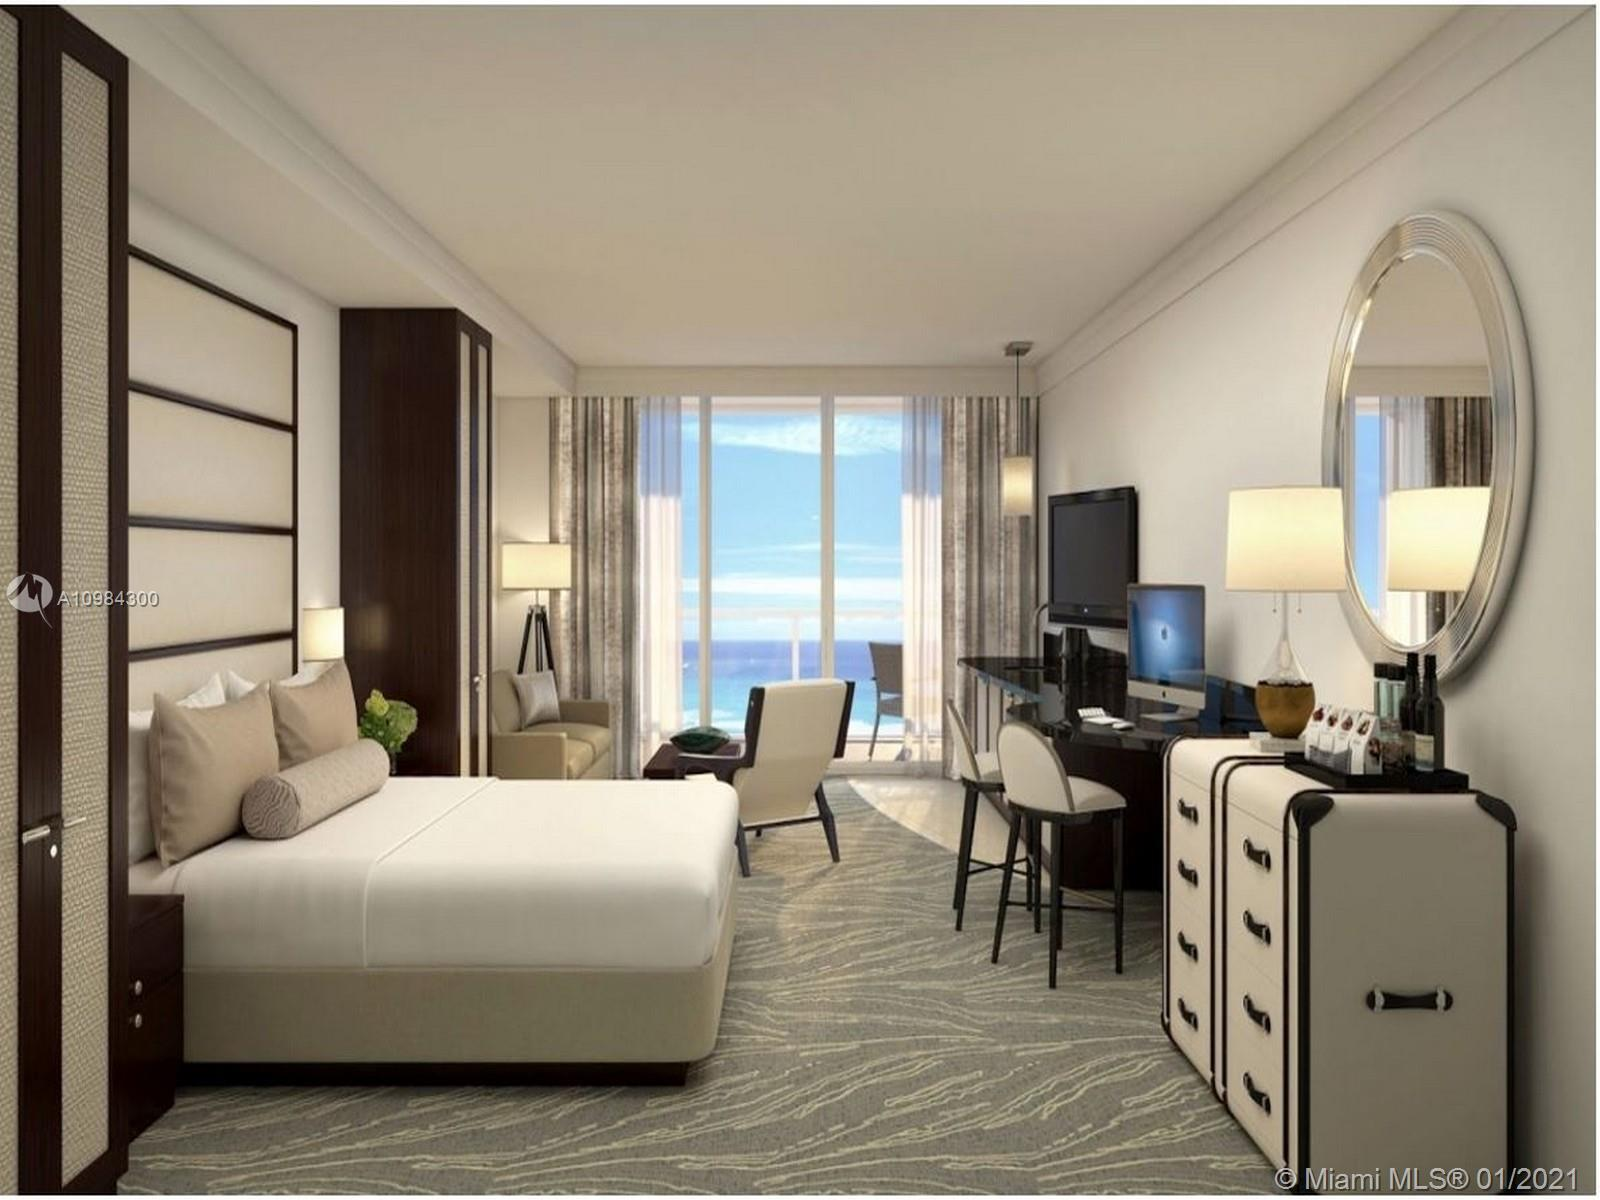 BEAUTIFUL JUNIOR SUITE/1 BATH WITH VIEWS OF OCEAN, BAY & CITY. FULLY FURNISHED TURNKEY INCLUDES: FLA